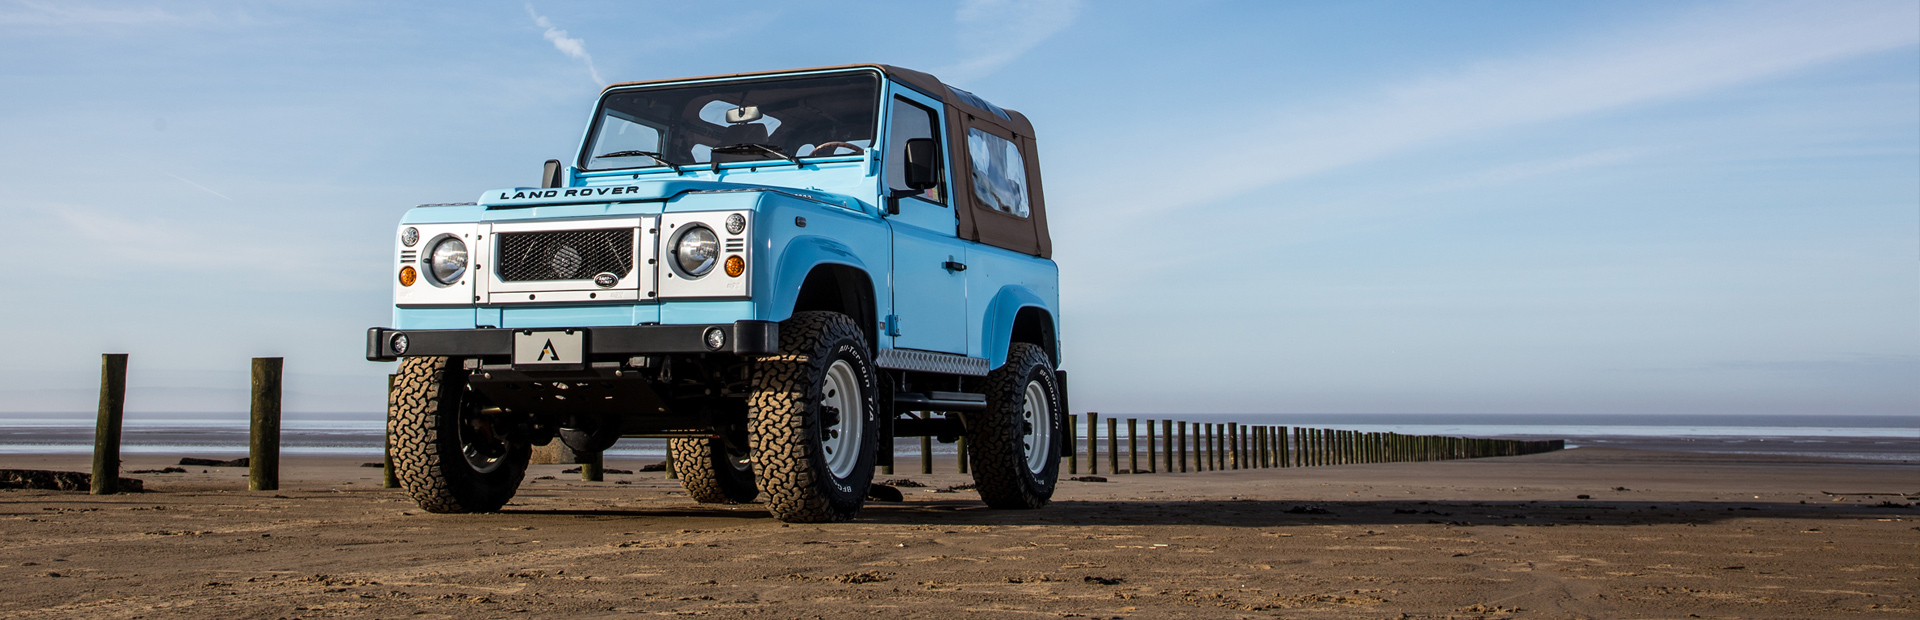 Arkonik Baja - Custom built Land Rover Defender 90